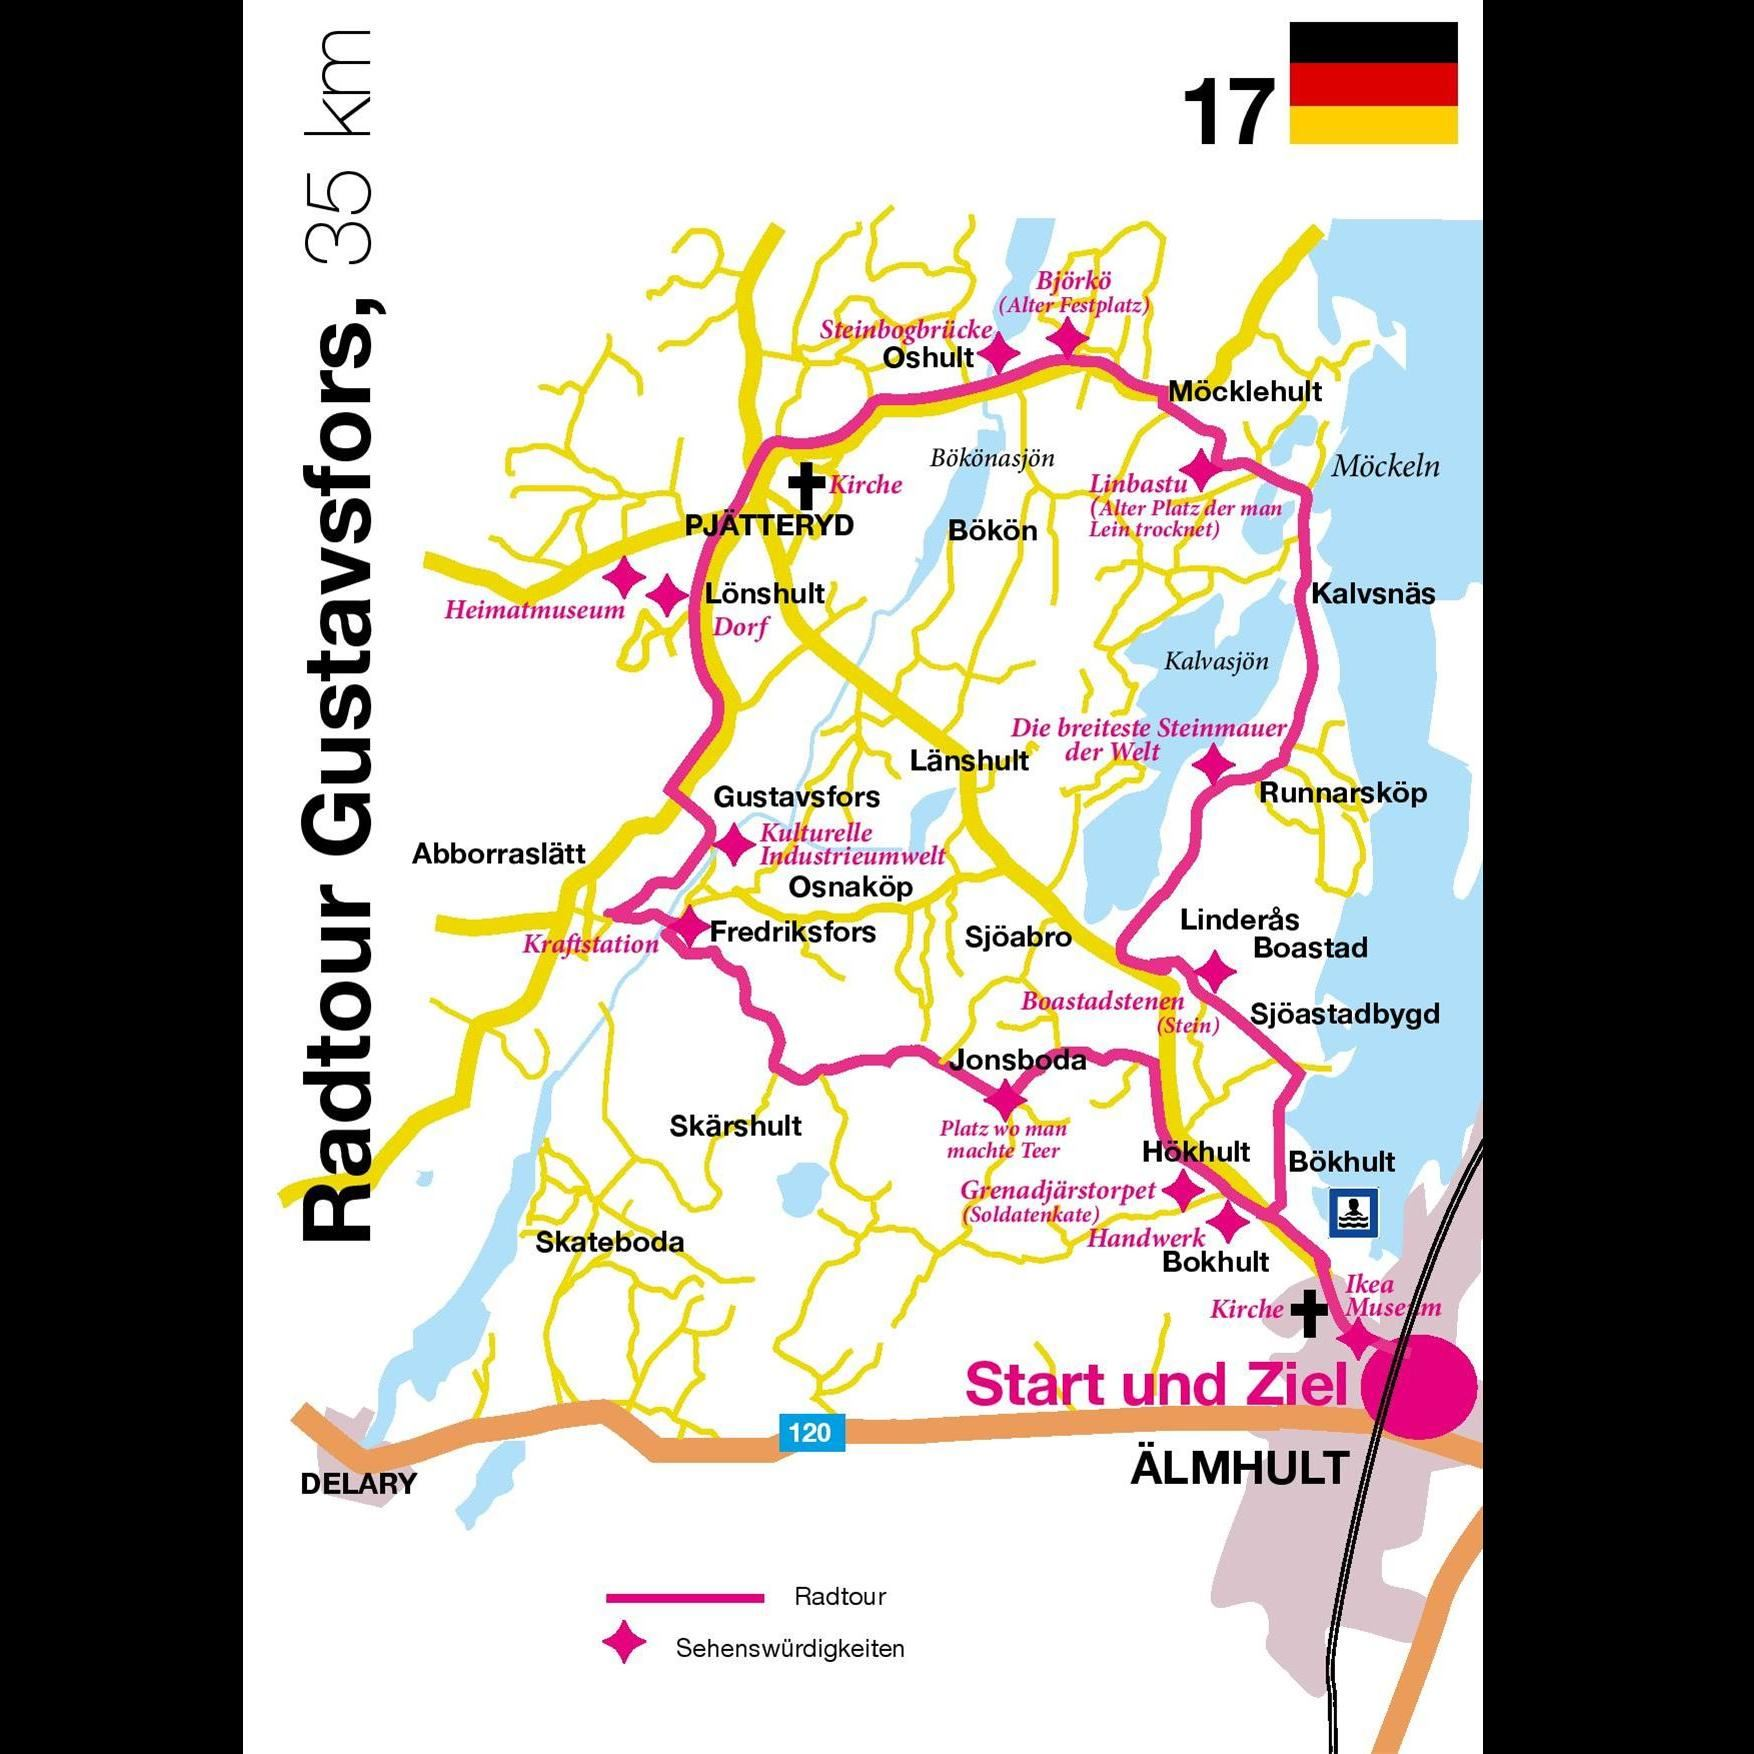 Bicycle tour - The Gustafsfors Tour - 35 km